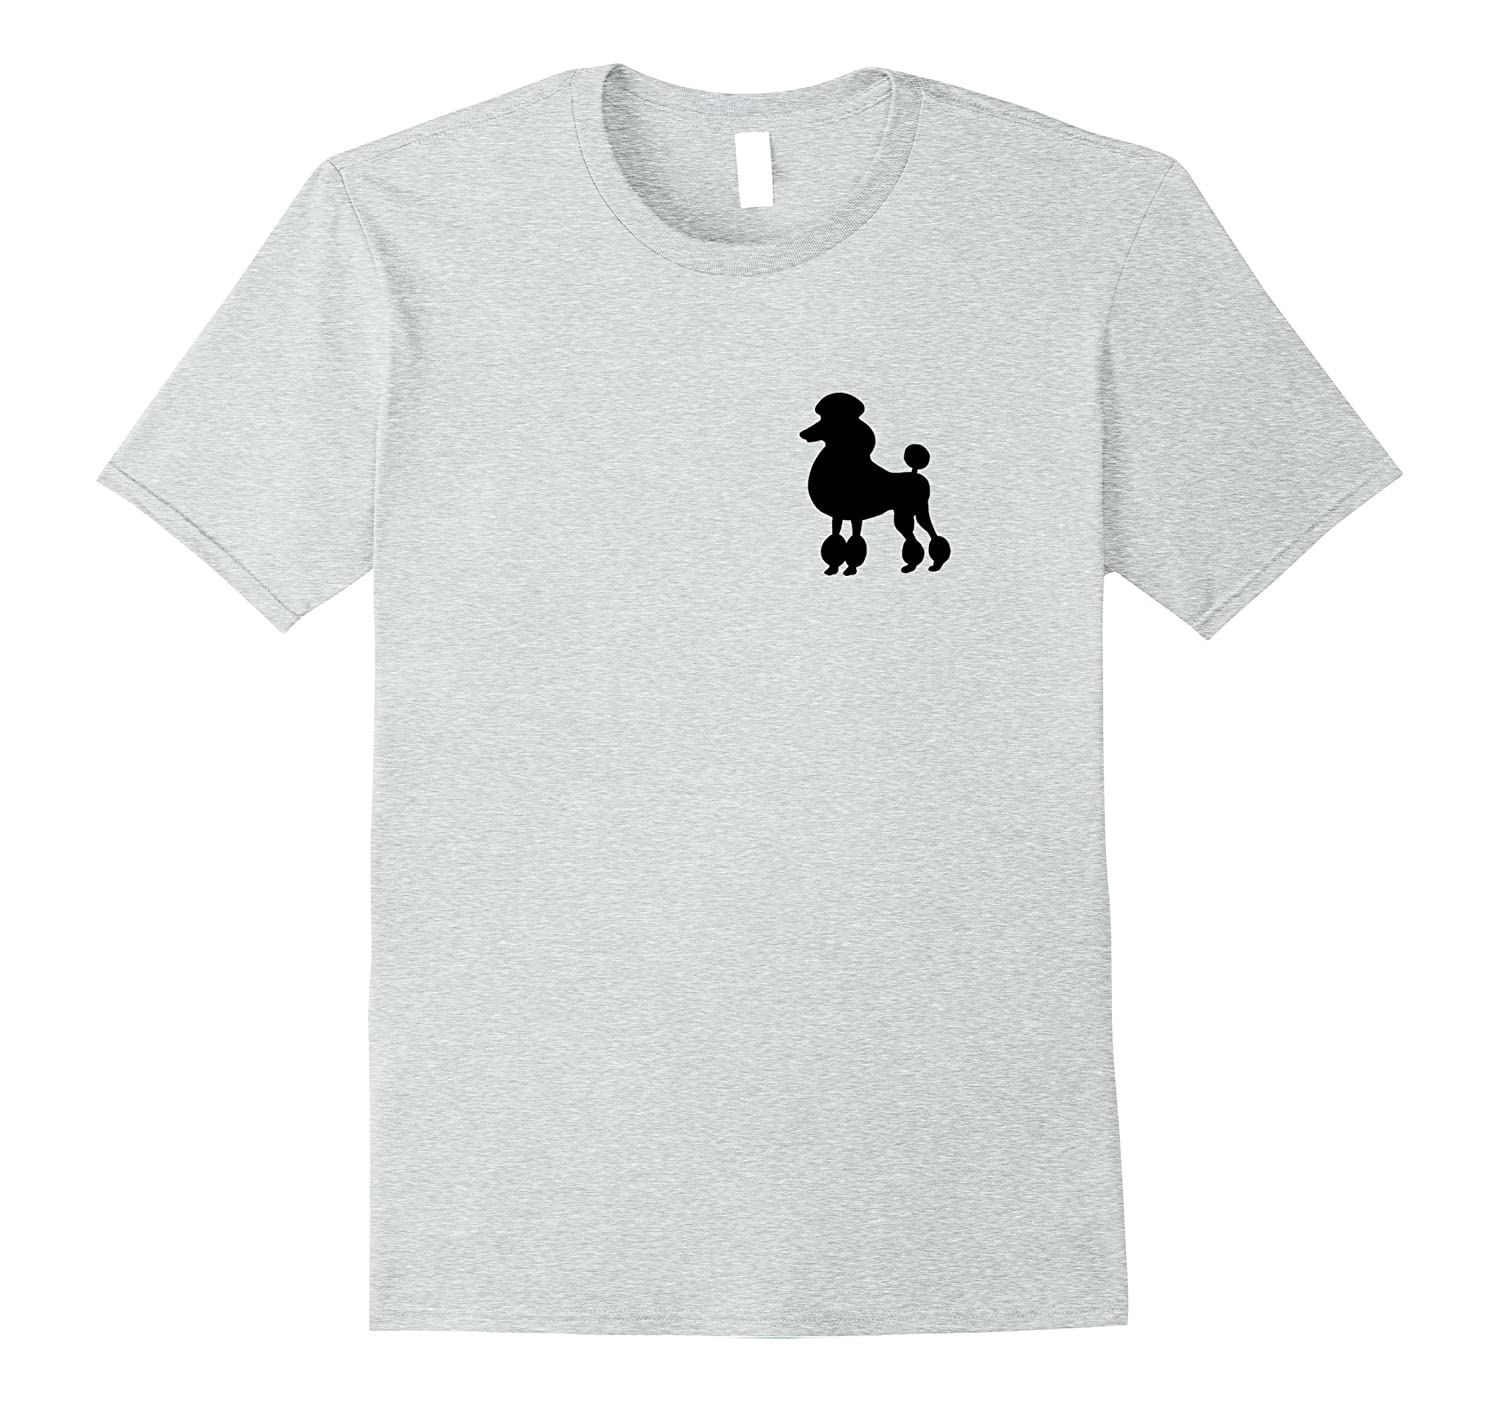 1950's Sock Hop Costume T-Shirt - Dog Cute Poodle Skirt-ah my shirt one gift